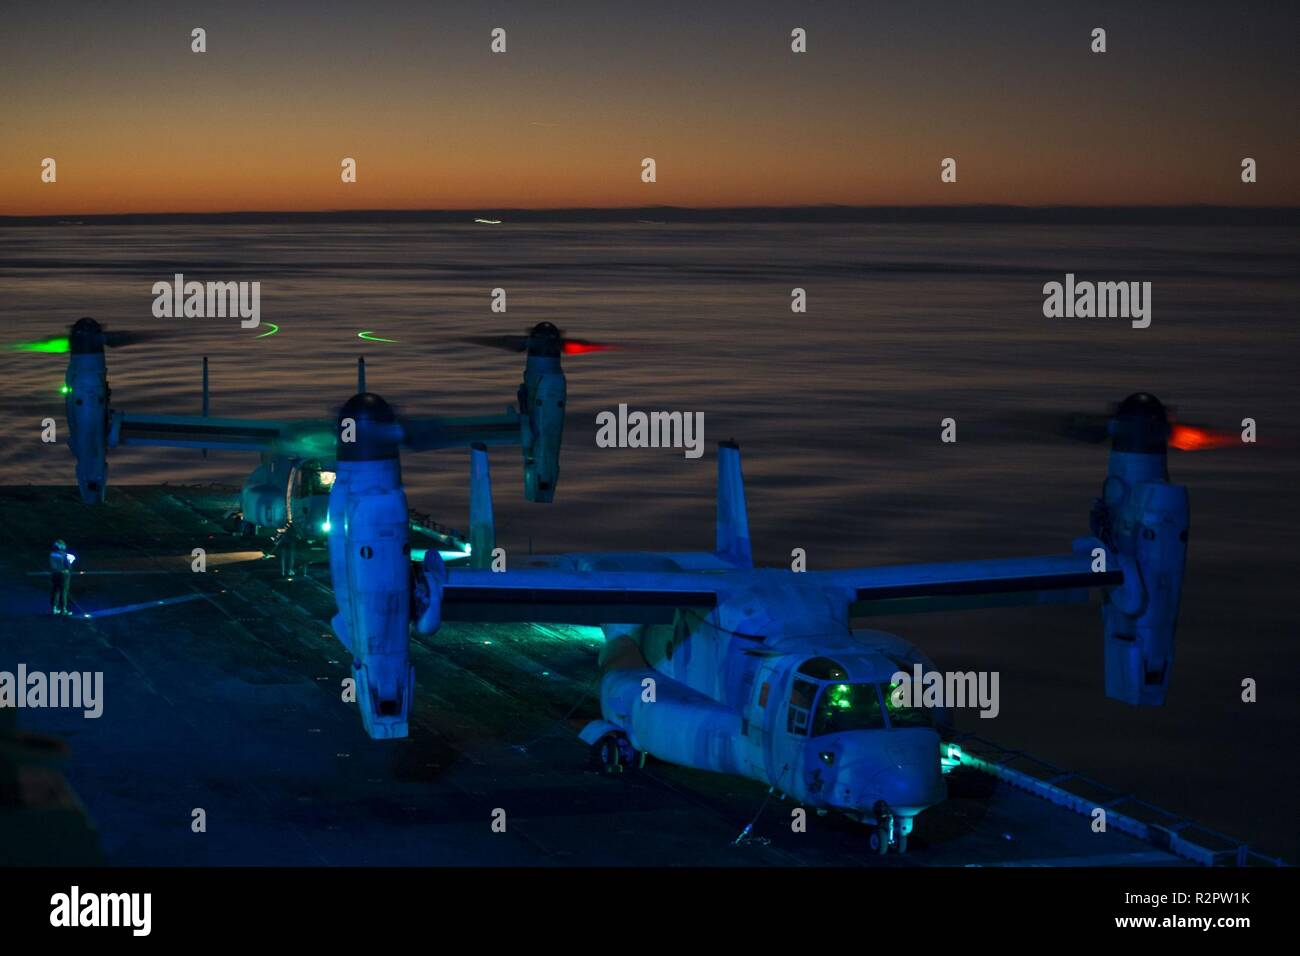 Two MV-22 Ospreys with Marine Medium Tiltrotor Squadron 264 (Reinforced), 22nd Marine Expeditionary Unit, prepare for takeoff prior to executing an amphibious assault training exercise during the Carrier Strike Group 4 composite training unit exercise (COMPTUEX) aboard the Wasp-class amphibious assault ship USS Kearsarge (LHD 3), Oct. 18, 2018. COMPTUEX is the final pre-deployment exercise that certifies the combined Kearsarge Amphibious Ready Group and 22nd Marine Expeditionary Unit's abilities to conduct military operations at sea and project power ashore through joint planning and execution Stock Photo